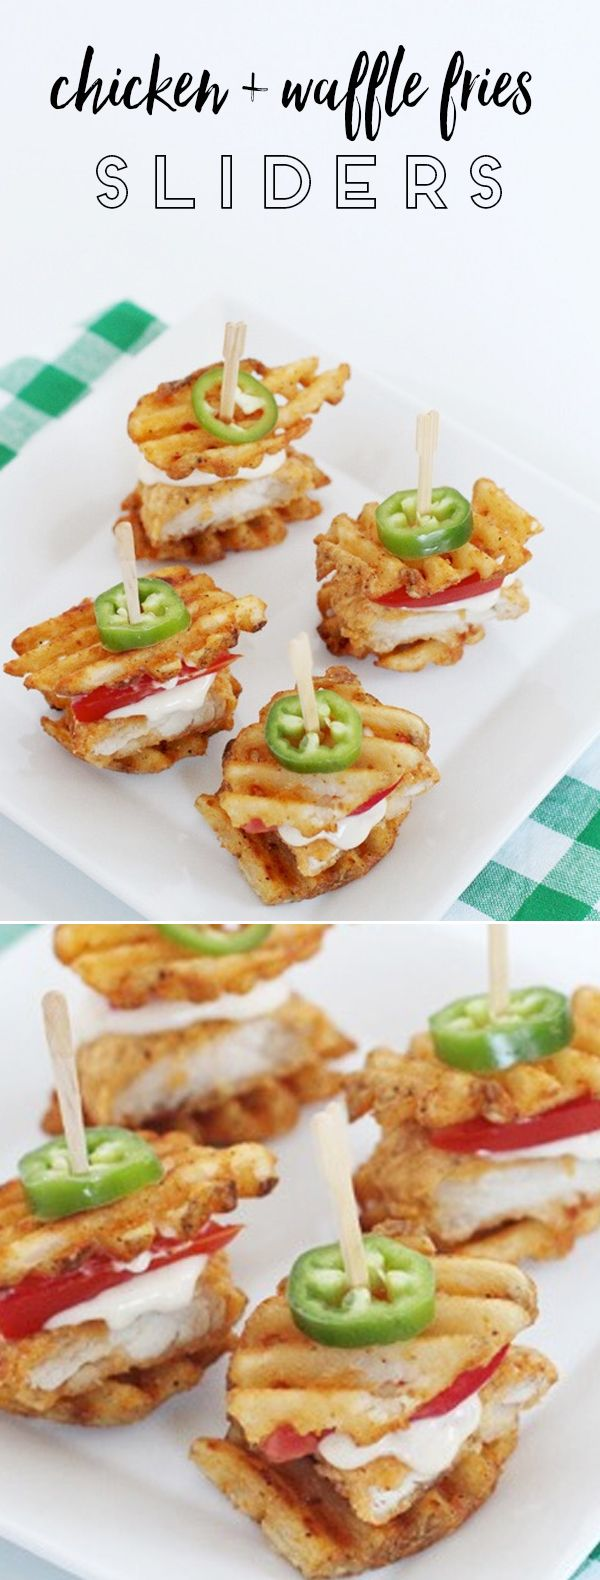 The perfect Super Bowl party food! A play on chicken and waffles -- these are chicken and waffle fries made into sliders!